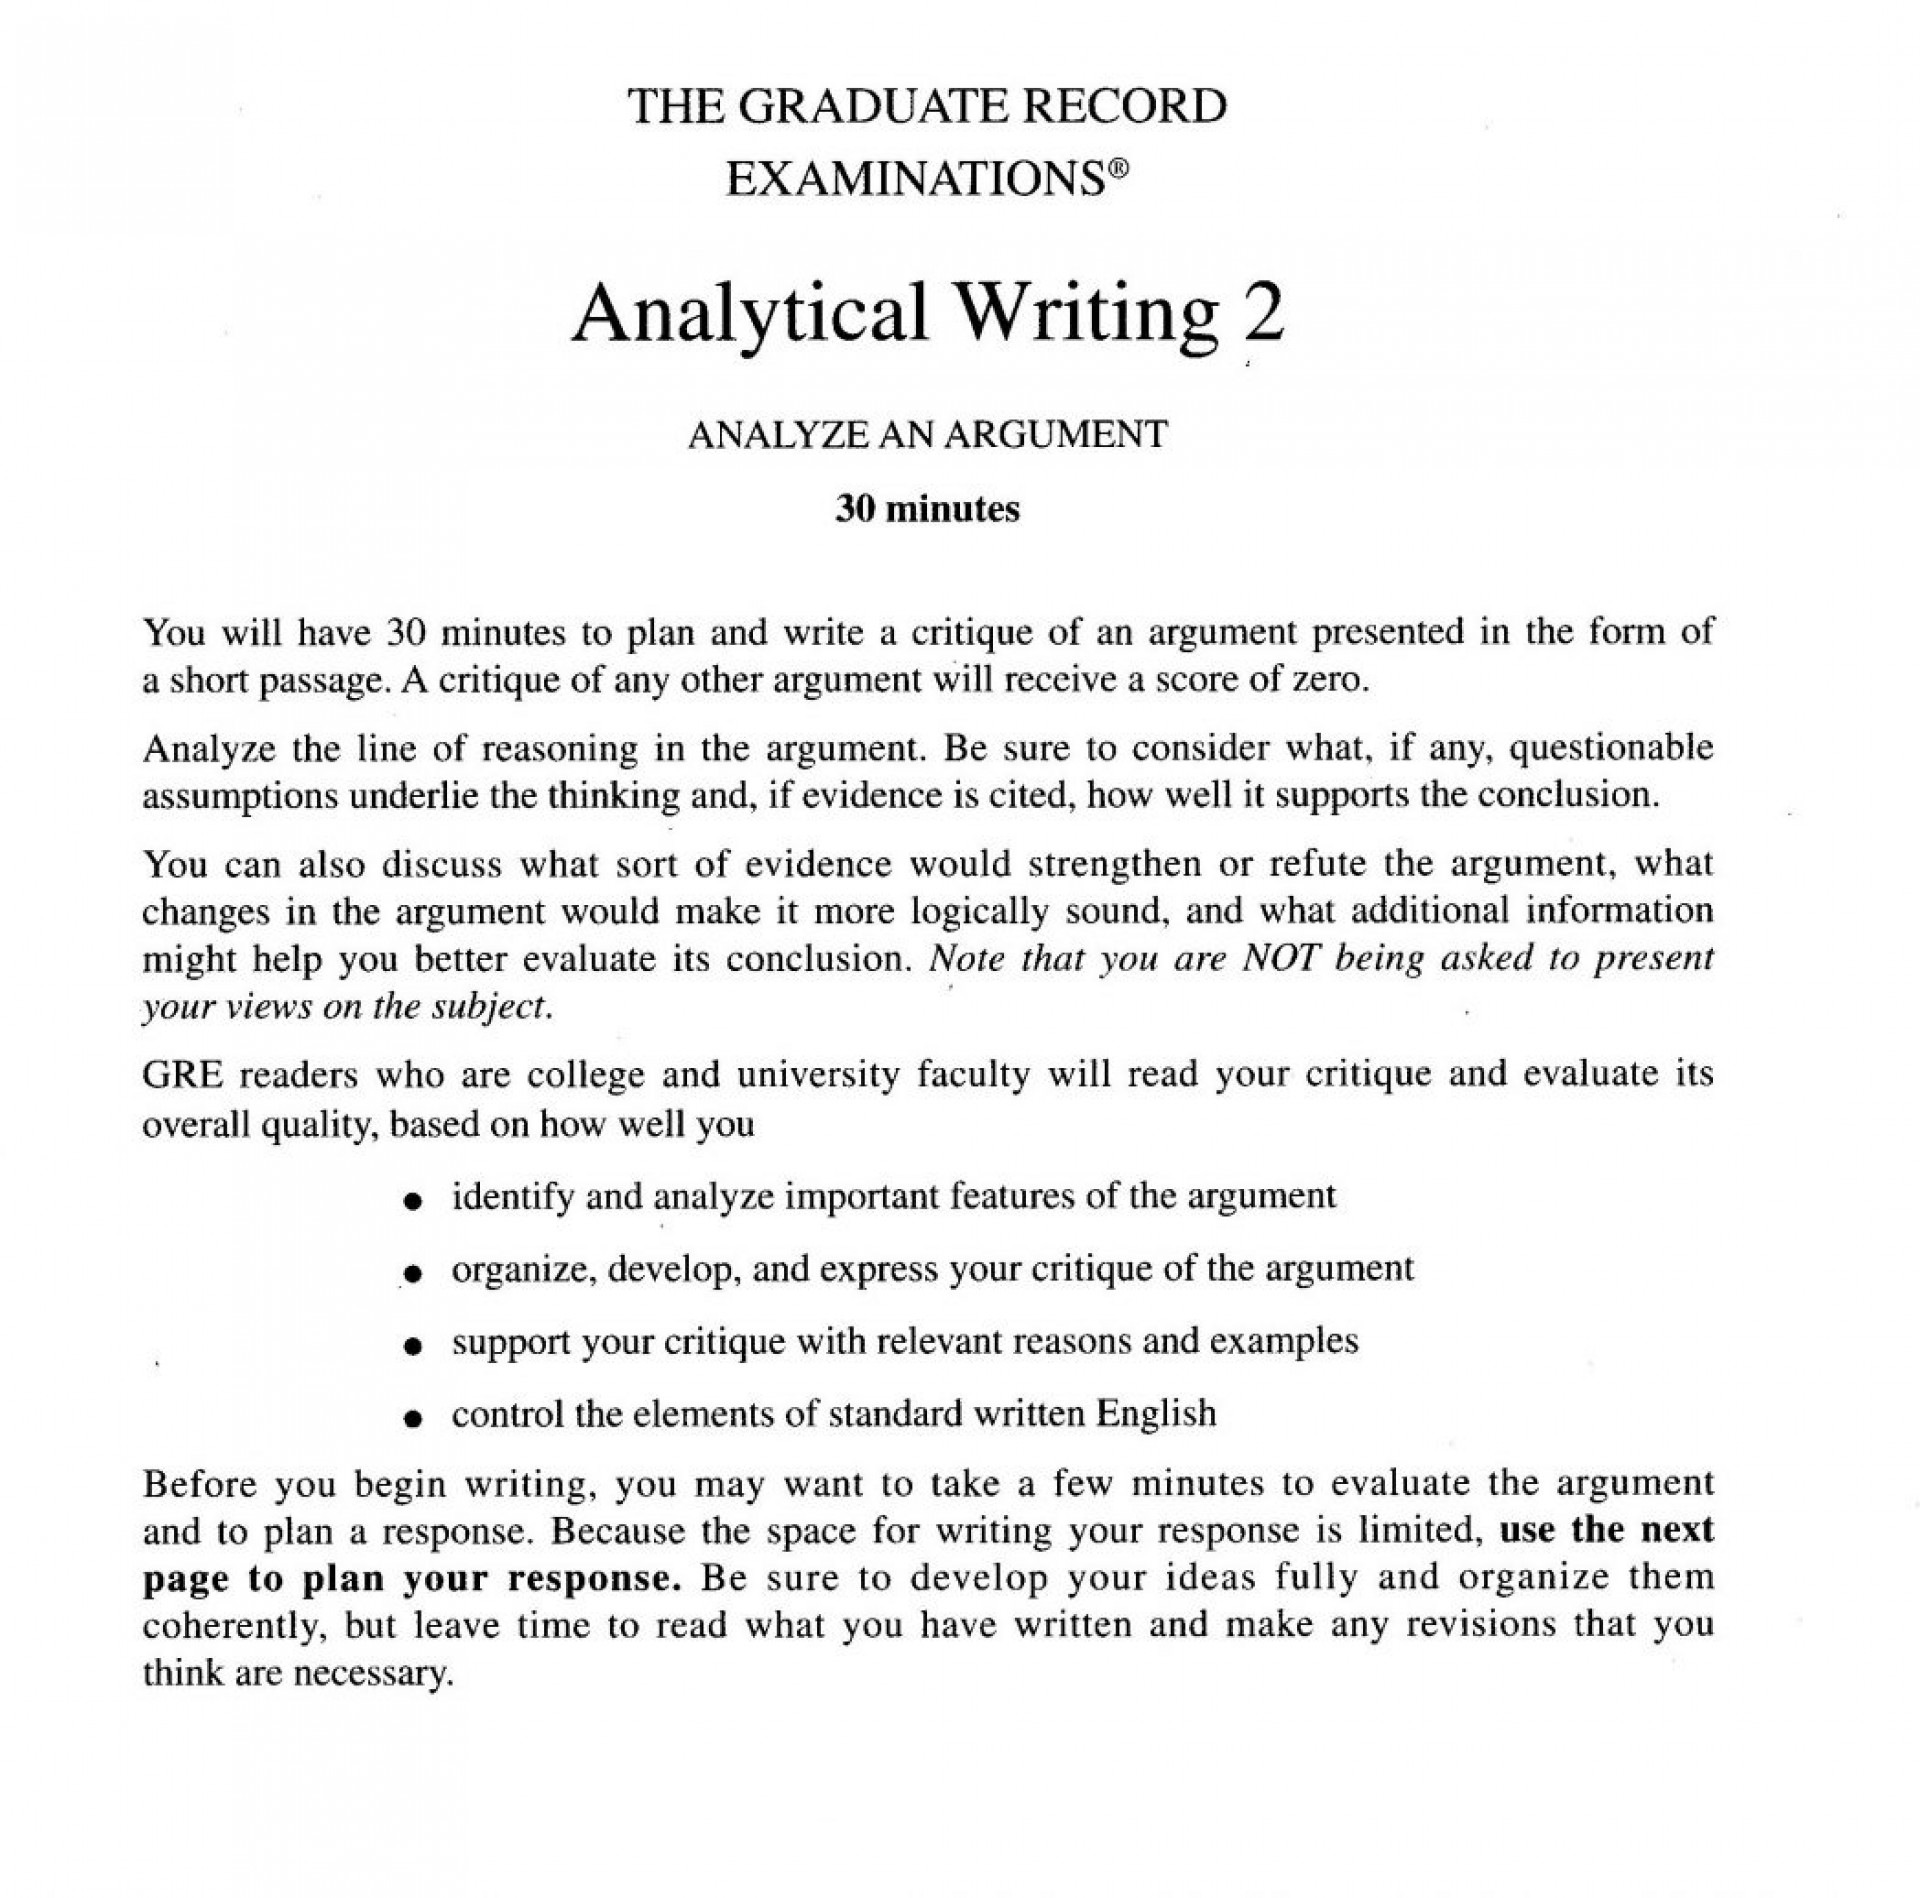 017 How To Write Response Essay Summary Analysi Readers 1048x1036 Amazing Reader Assignment Examples On The Story Of An Hour 1920